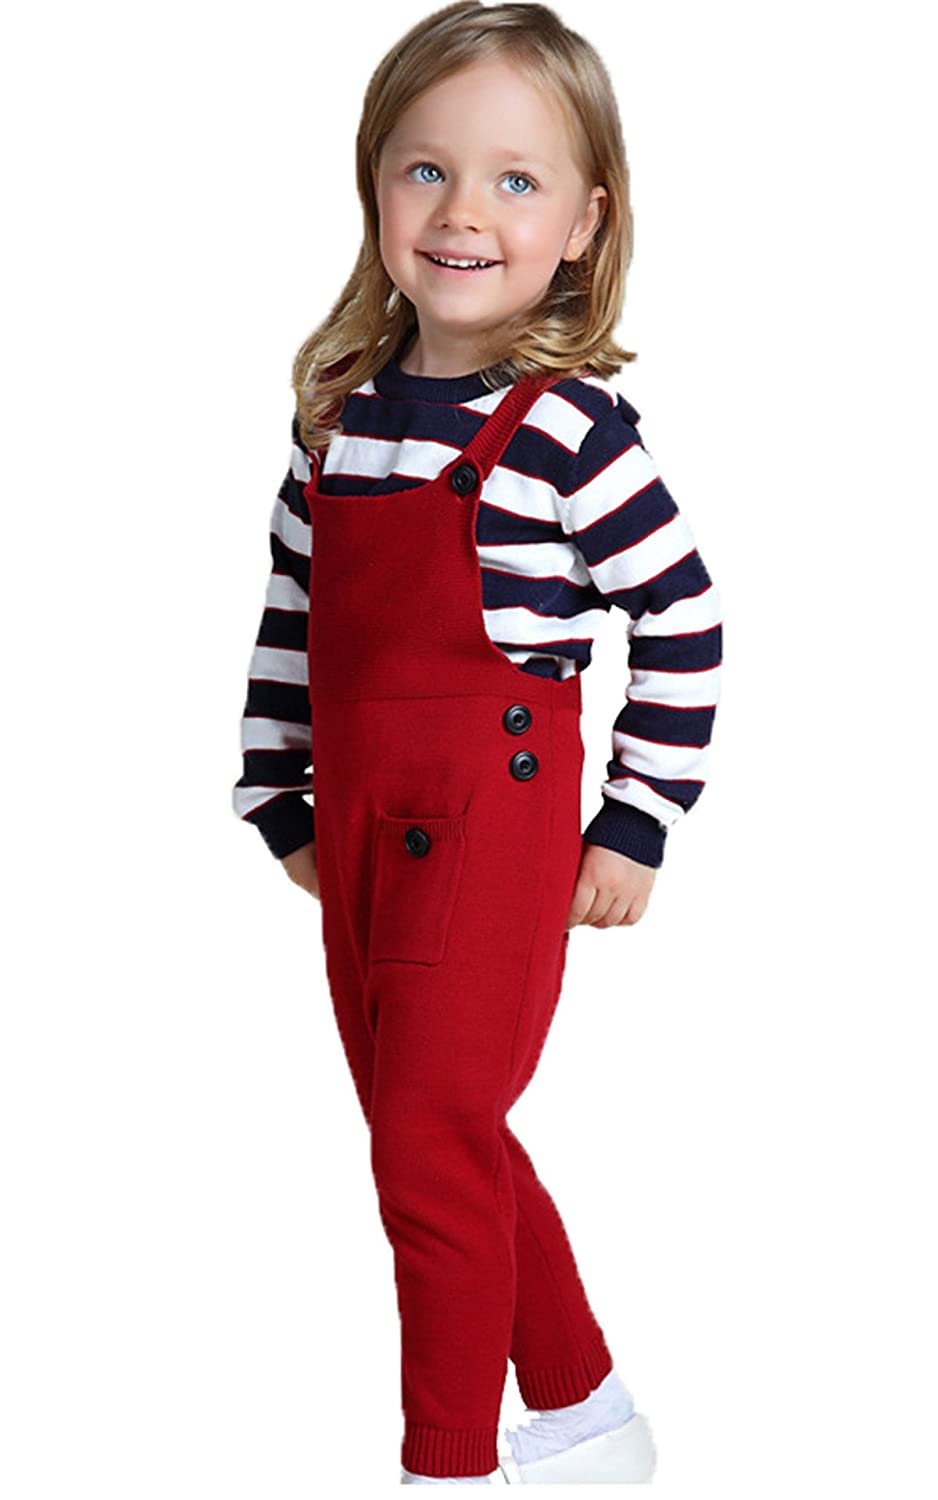 JELEUON Kids Baby Toddler Girl Knit Romper Cotton Jumpsuit Outfits